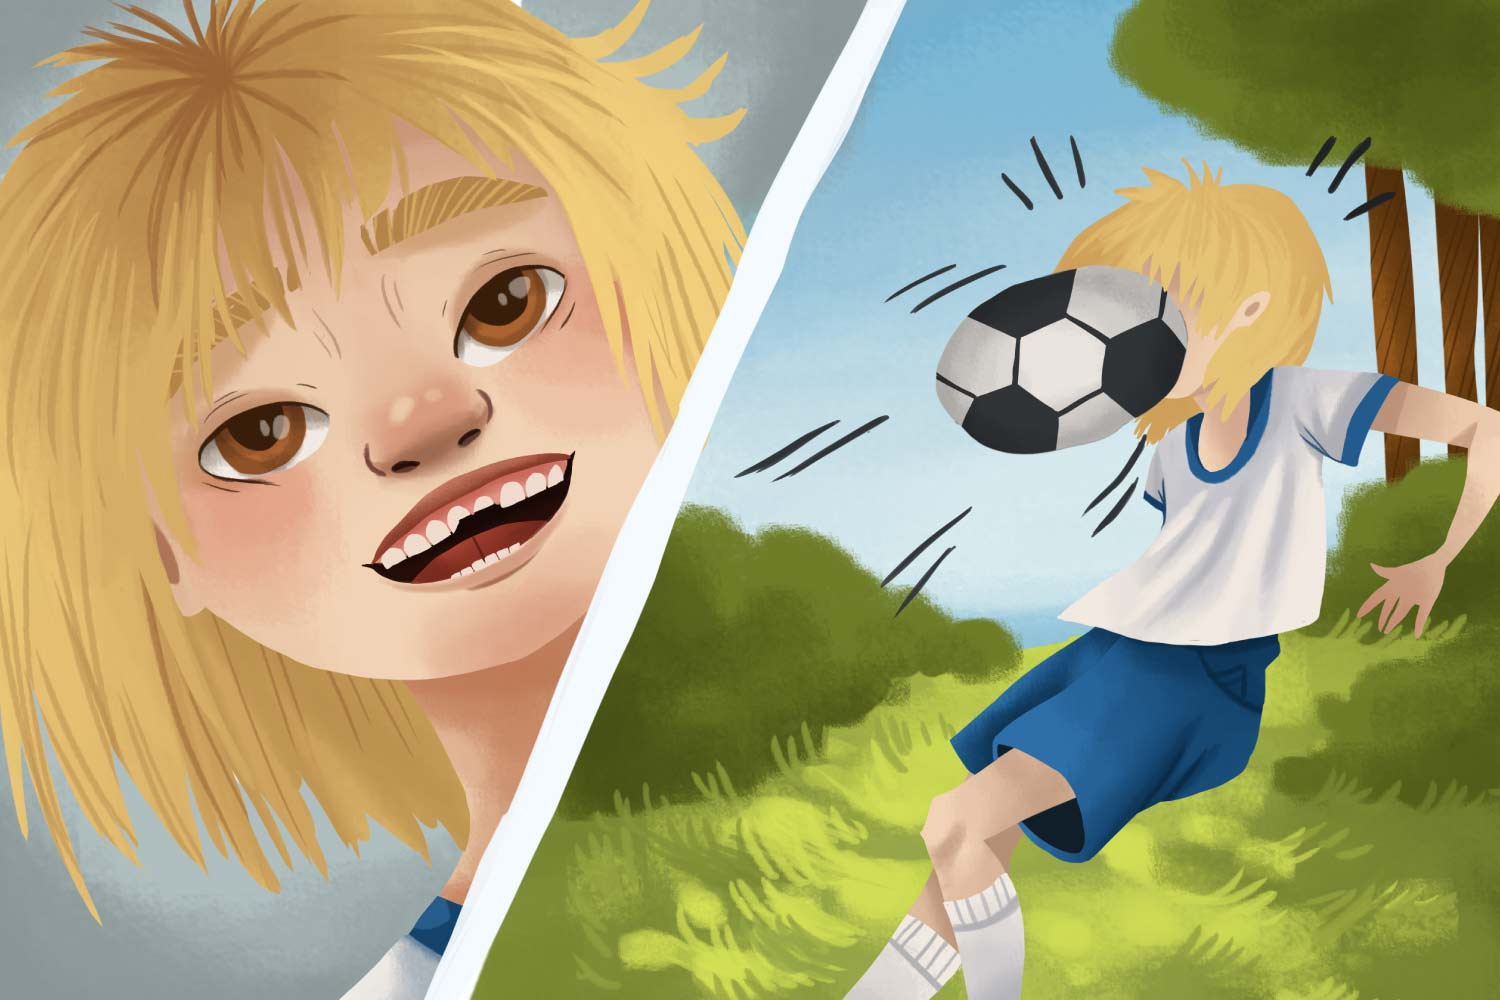 Cartoon image of a girl playing soccer that gets a chipped tooth